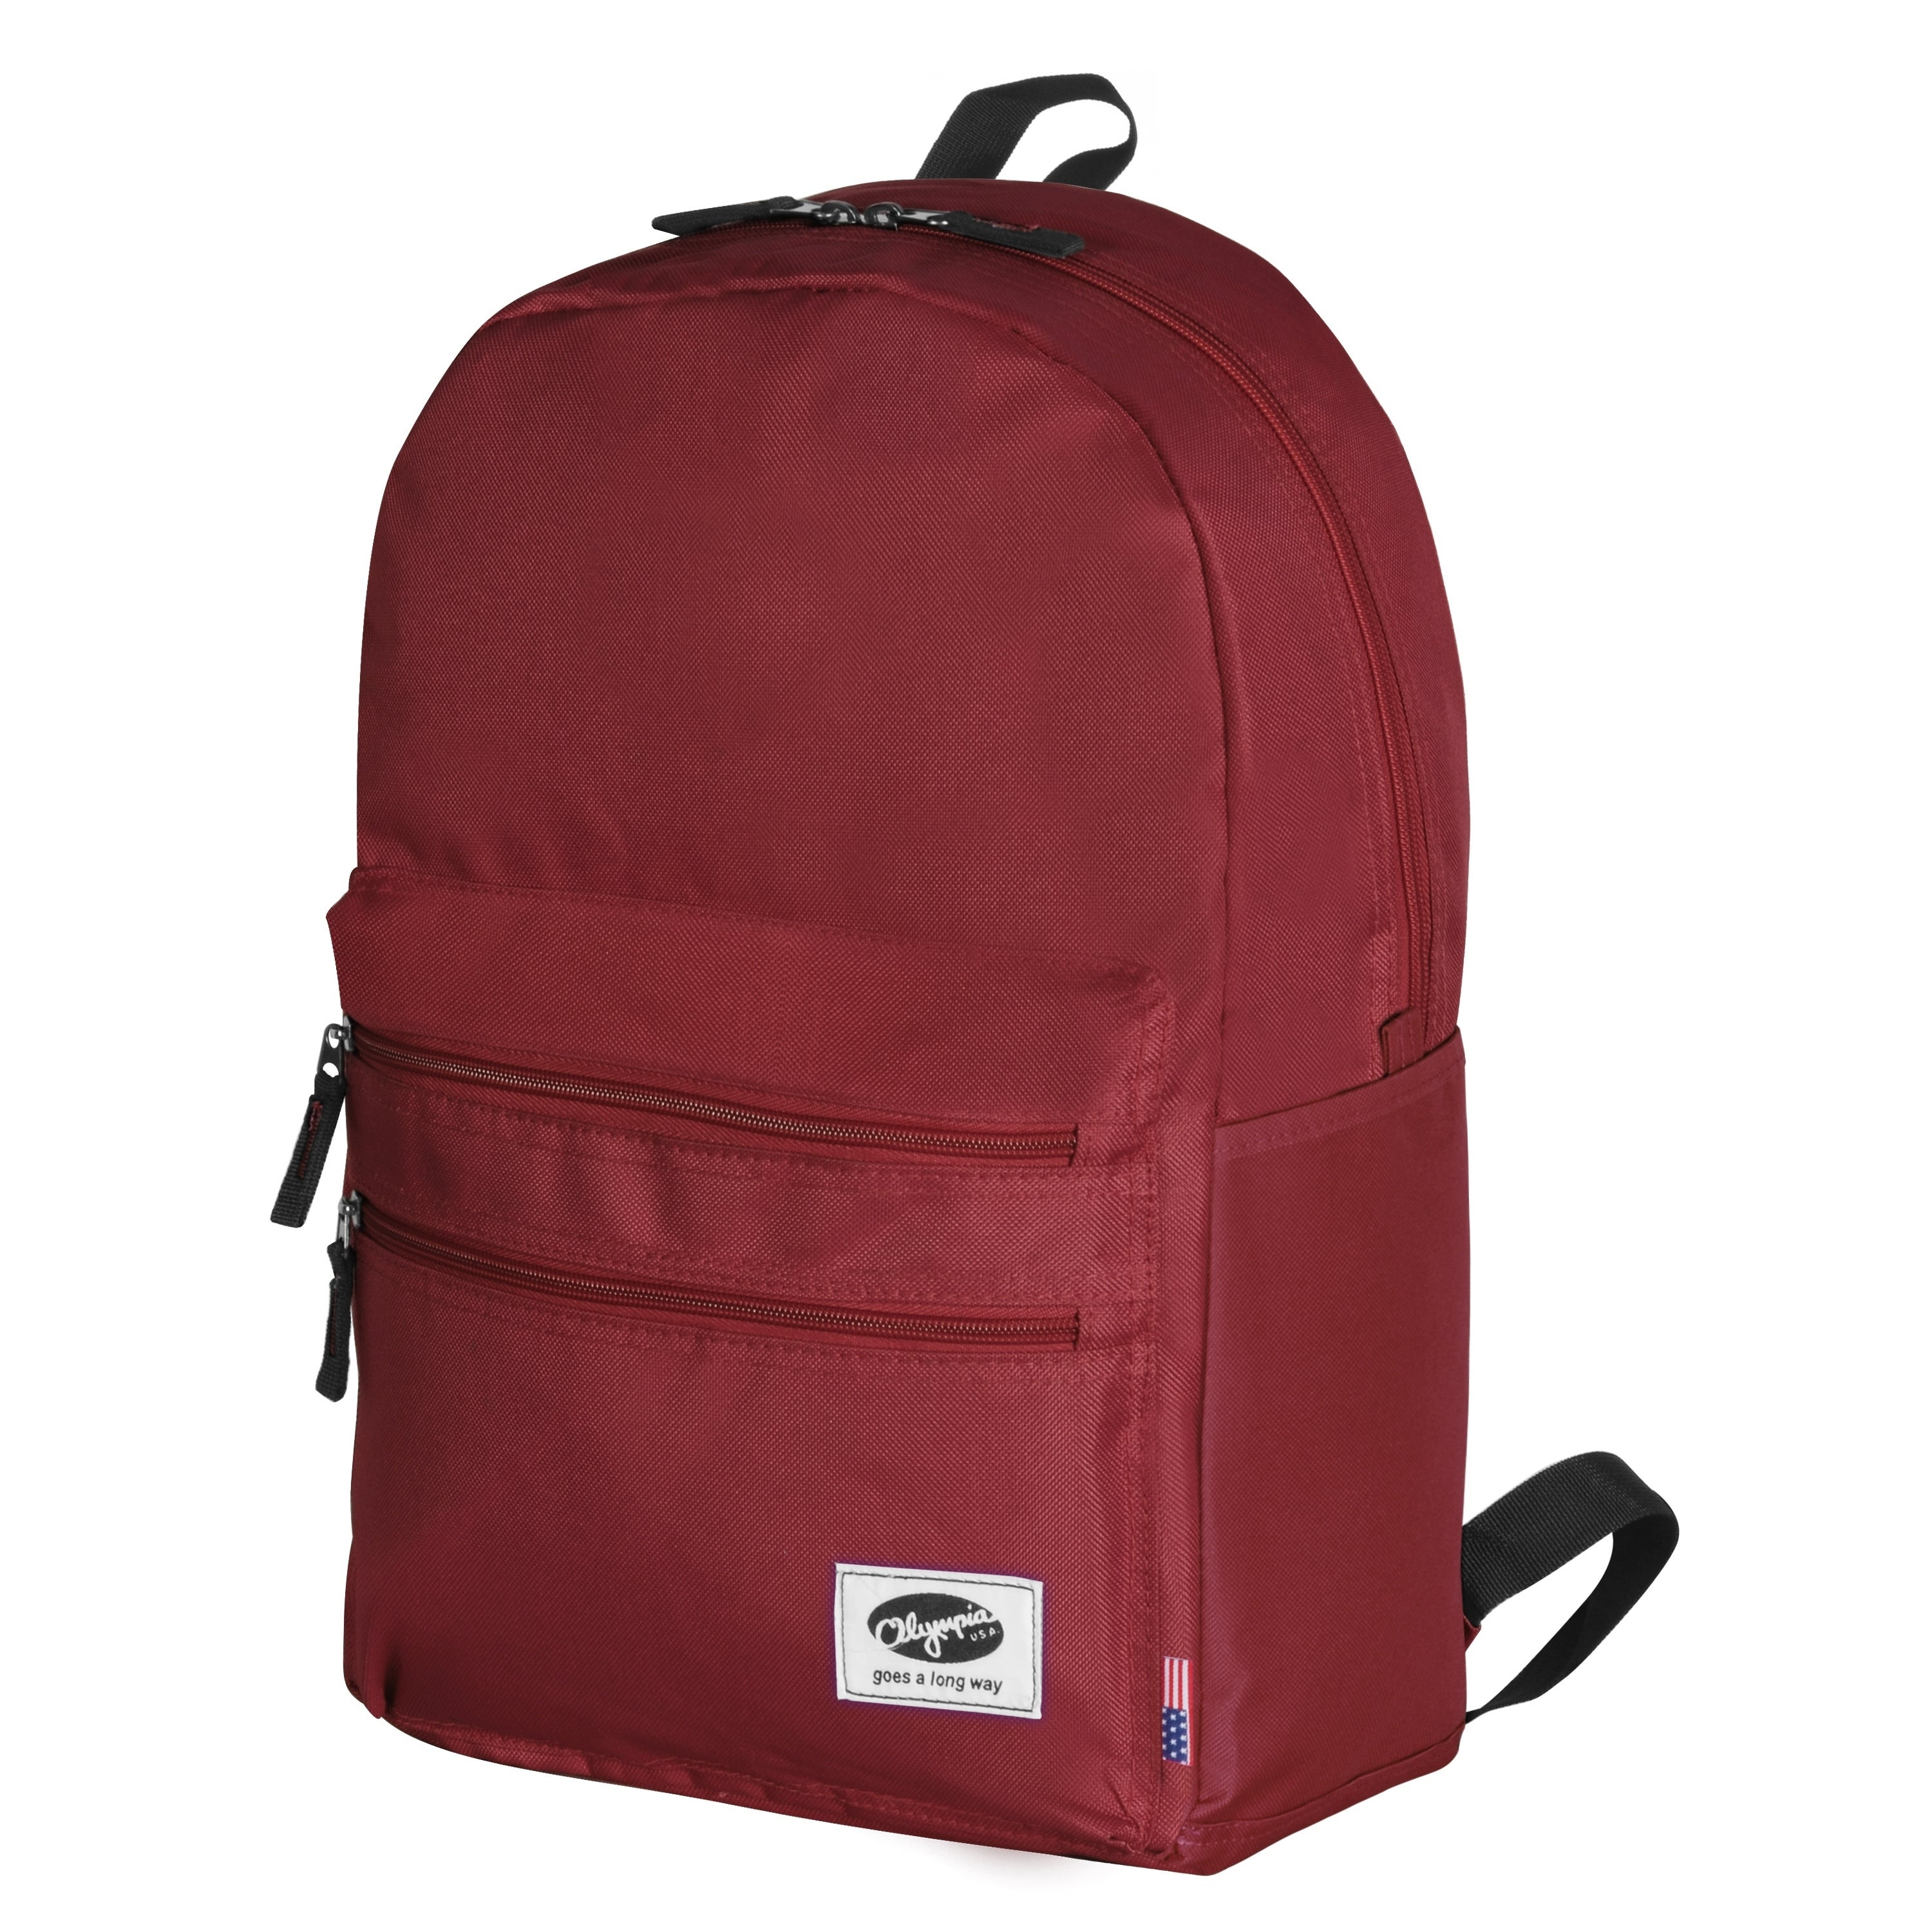 Olympia Princeton 18-inch Laptop Backpack  d7e2ac35e04ff